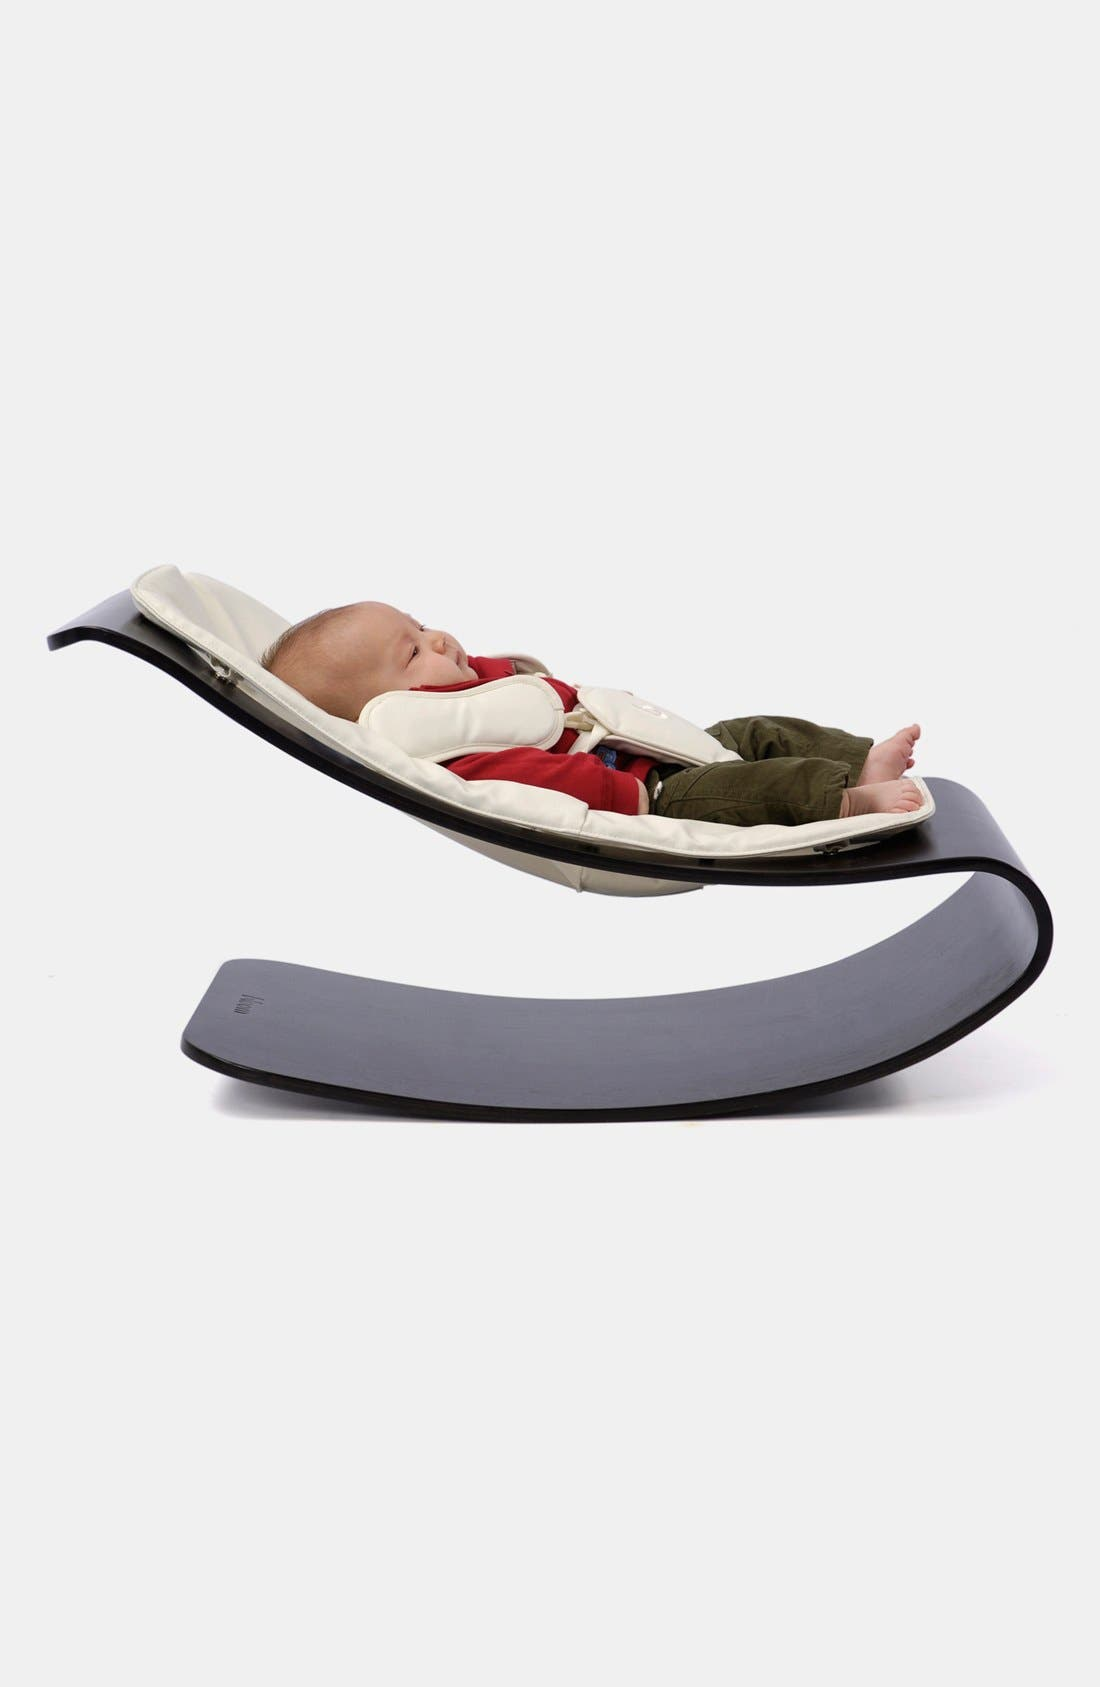 'Coco<sup>™</sup> - Stylewood<sup>™</sup>' Infant Seat Frame,                             Alternate thumbnail 2, color,                             200